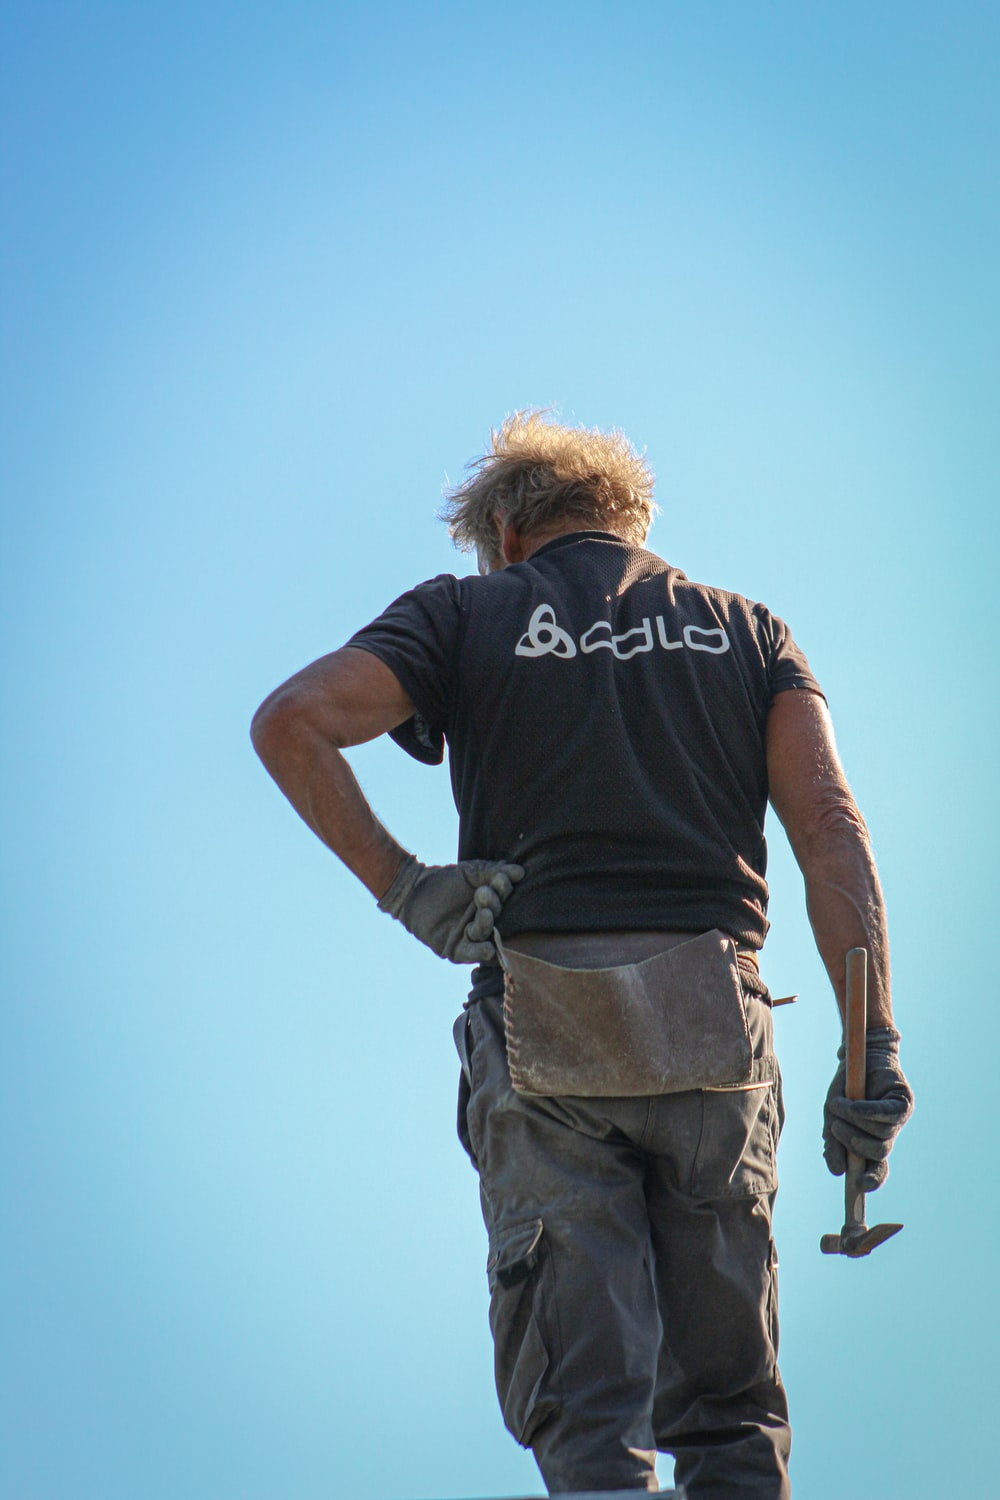 man in black t-shirt and gray cargo pants standing under blue sky during daytime